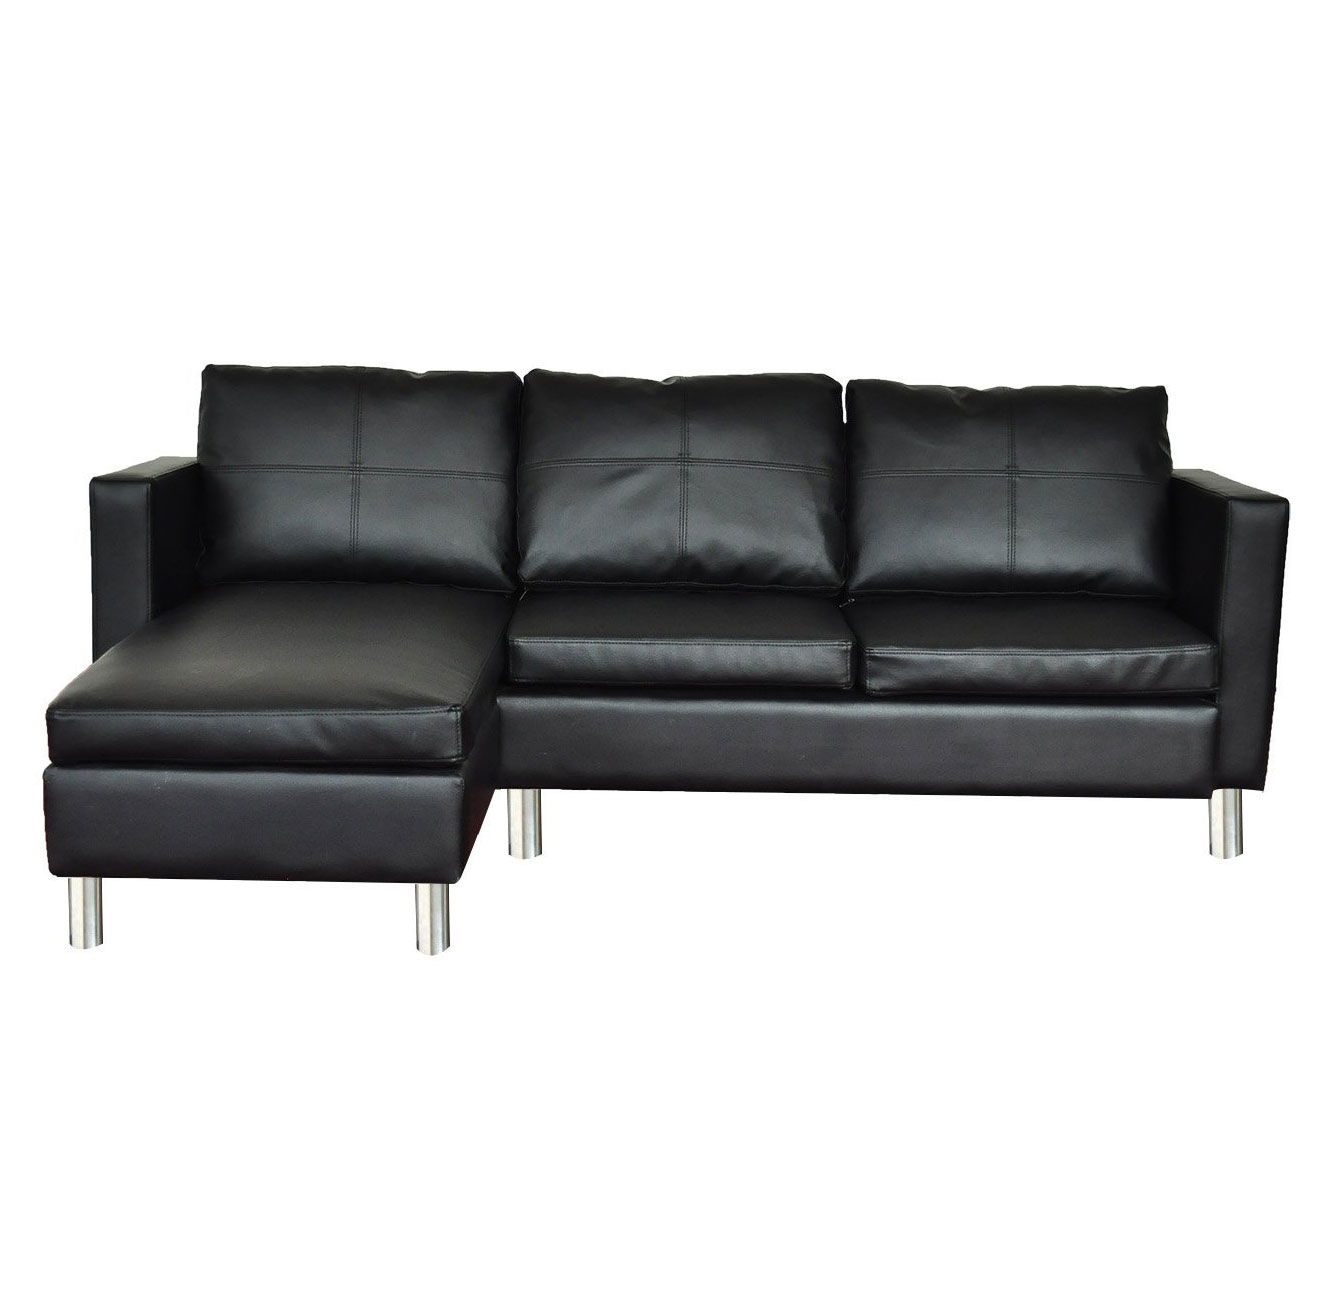 canap convertible usage quotidien pas cher canape convertible couchage quotidien with canap. Black Bedroom Furniture Sets. Home Design Ideas